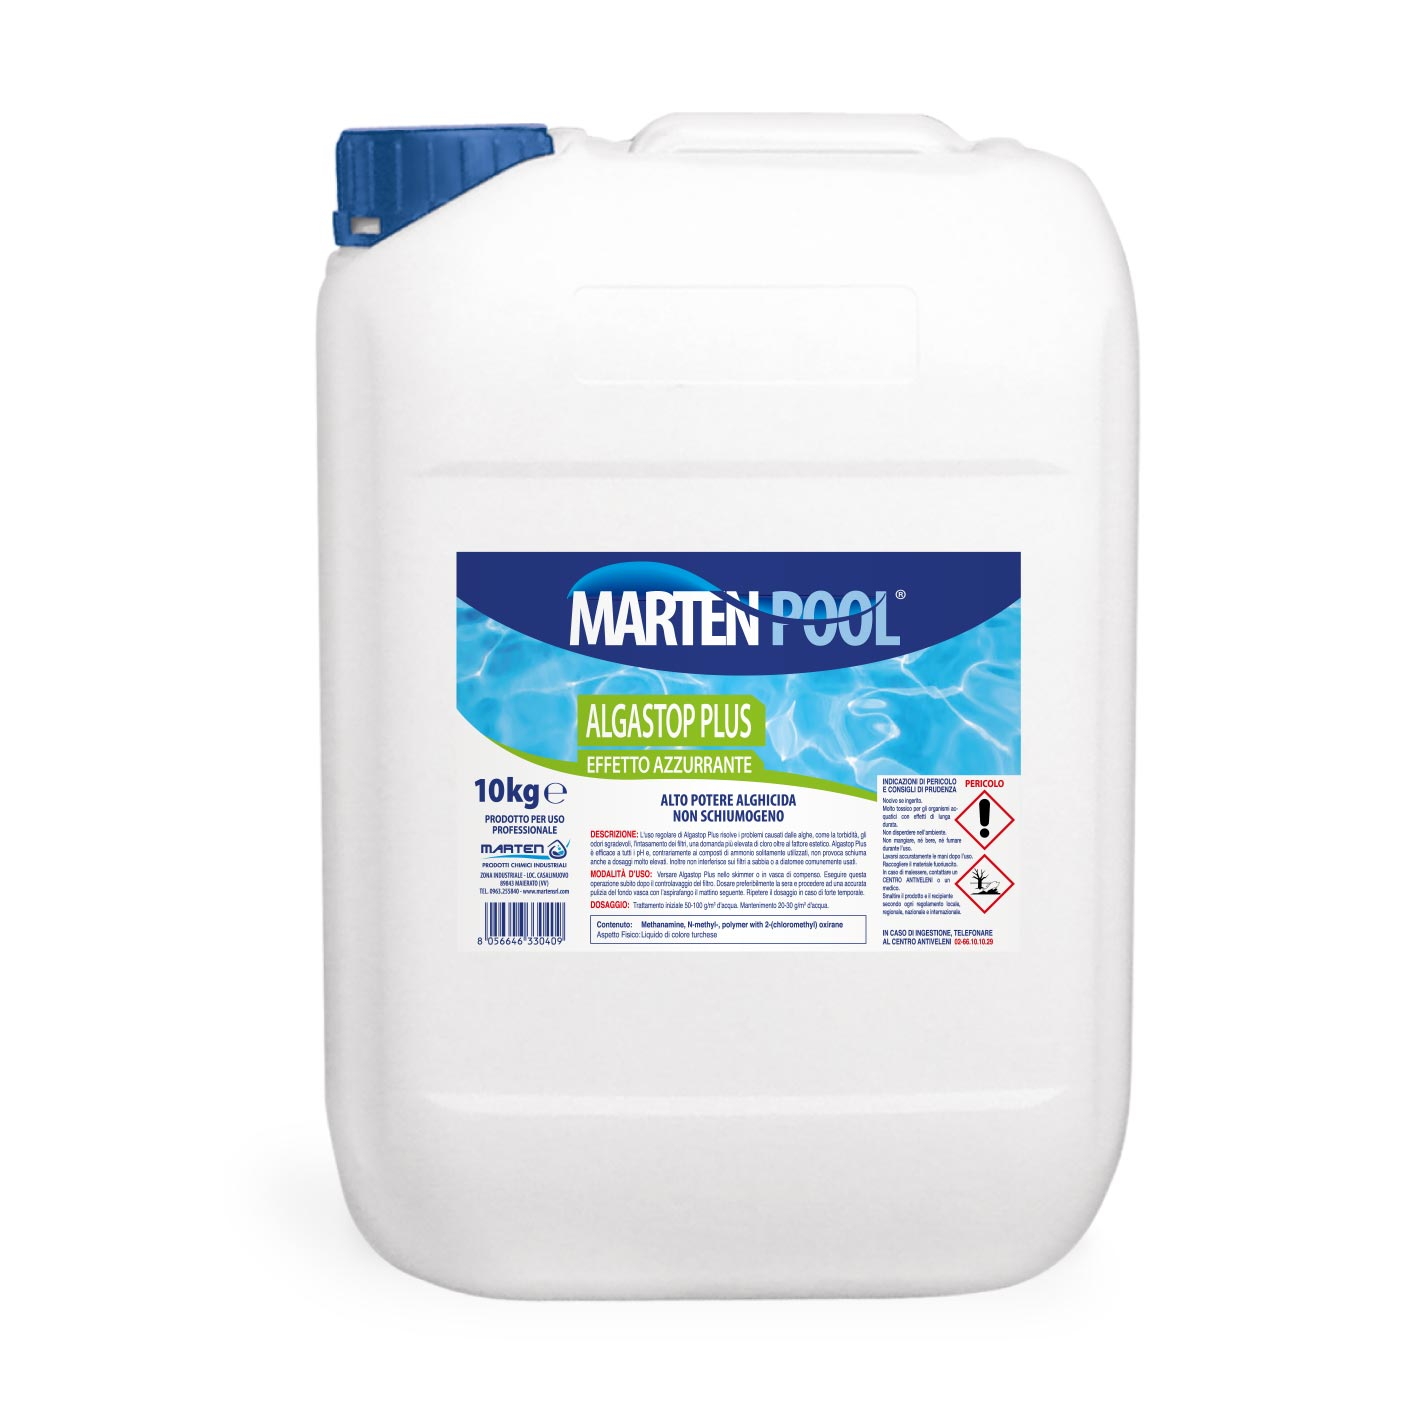 marten pool algastop plus 10kg